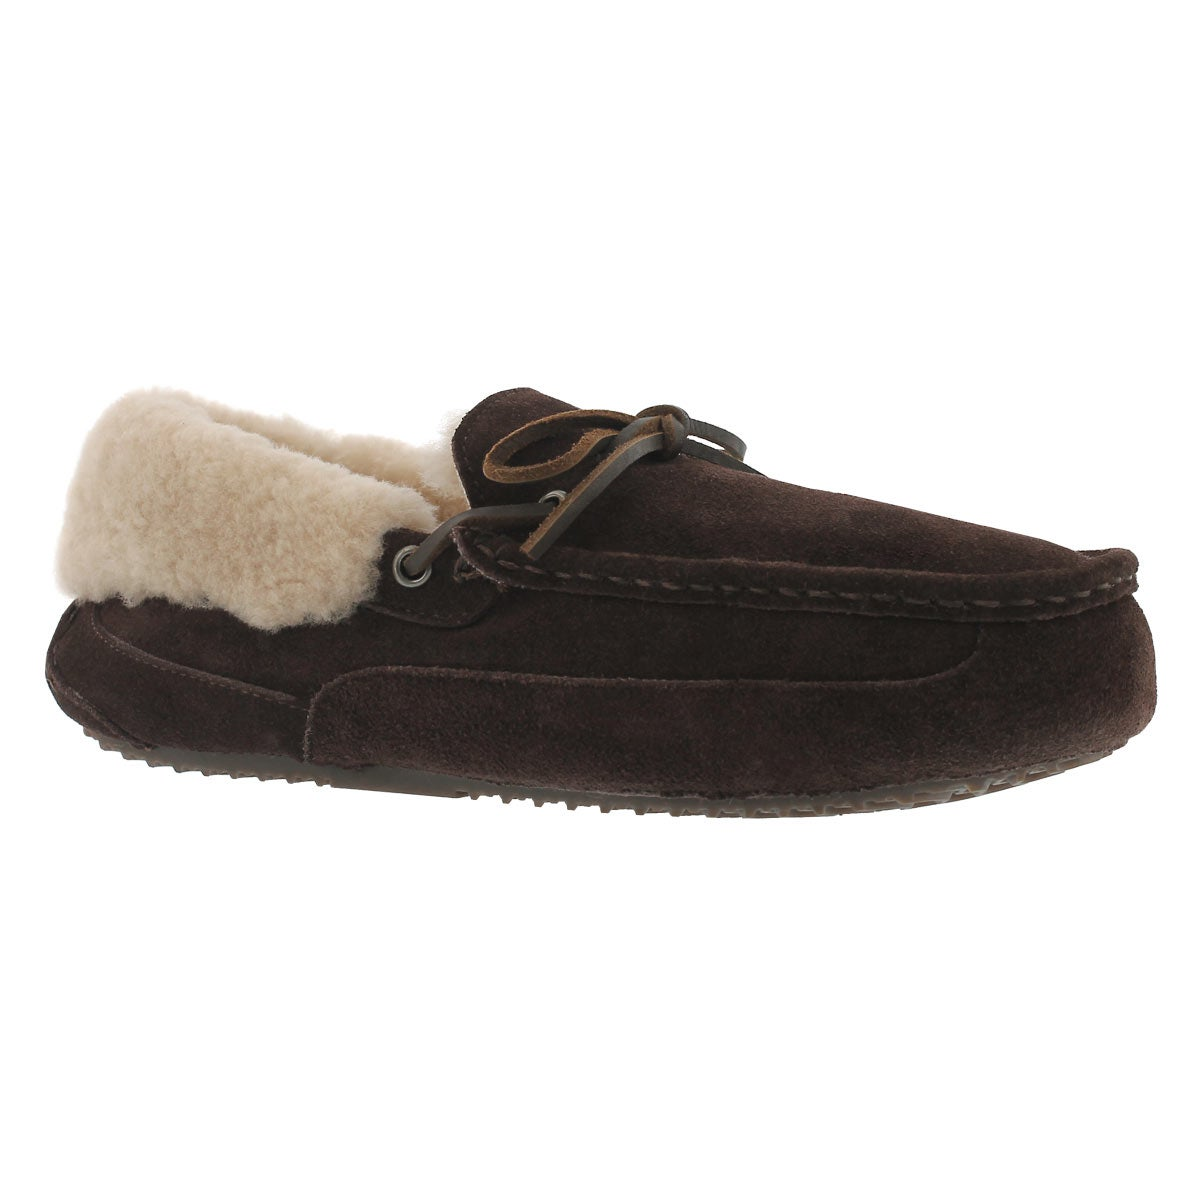 Men's PATRICK chocolate shearling lined moccasins